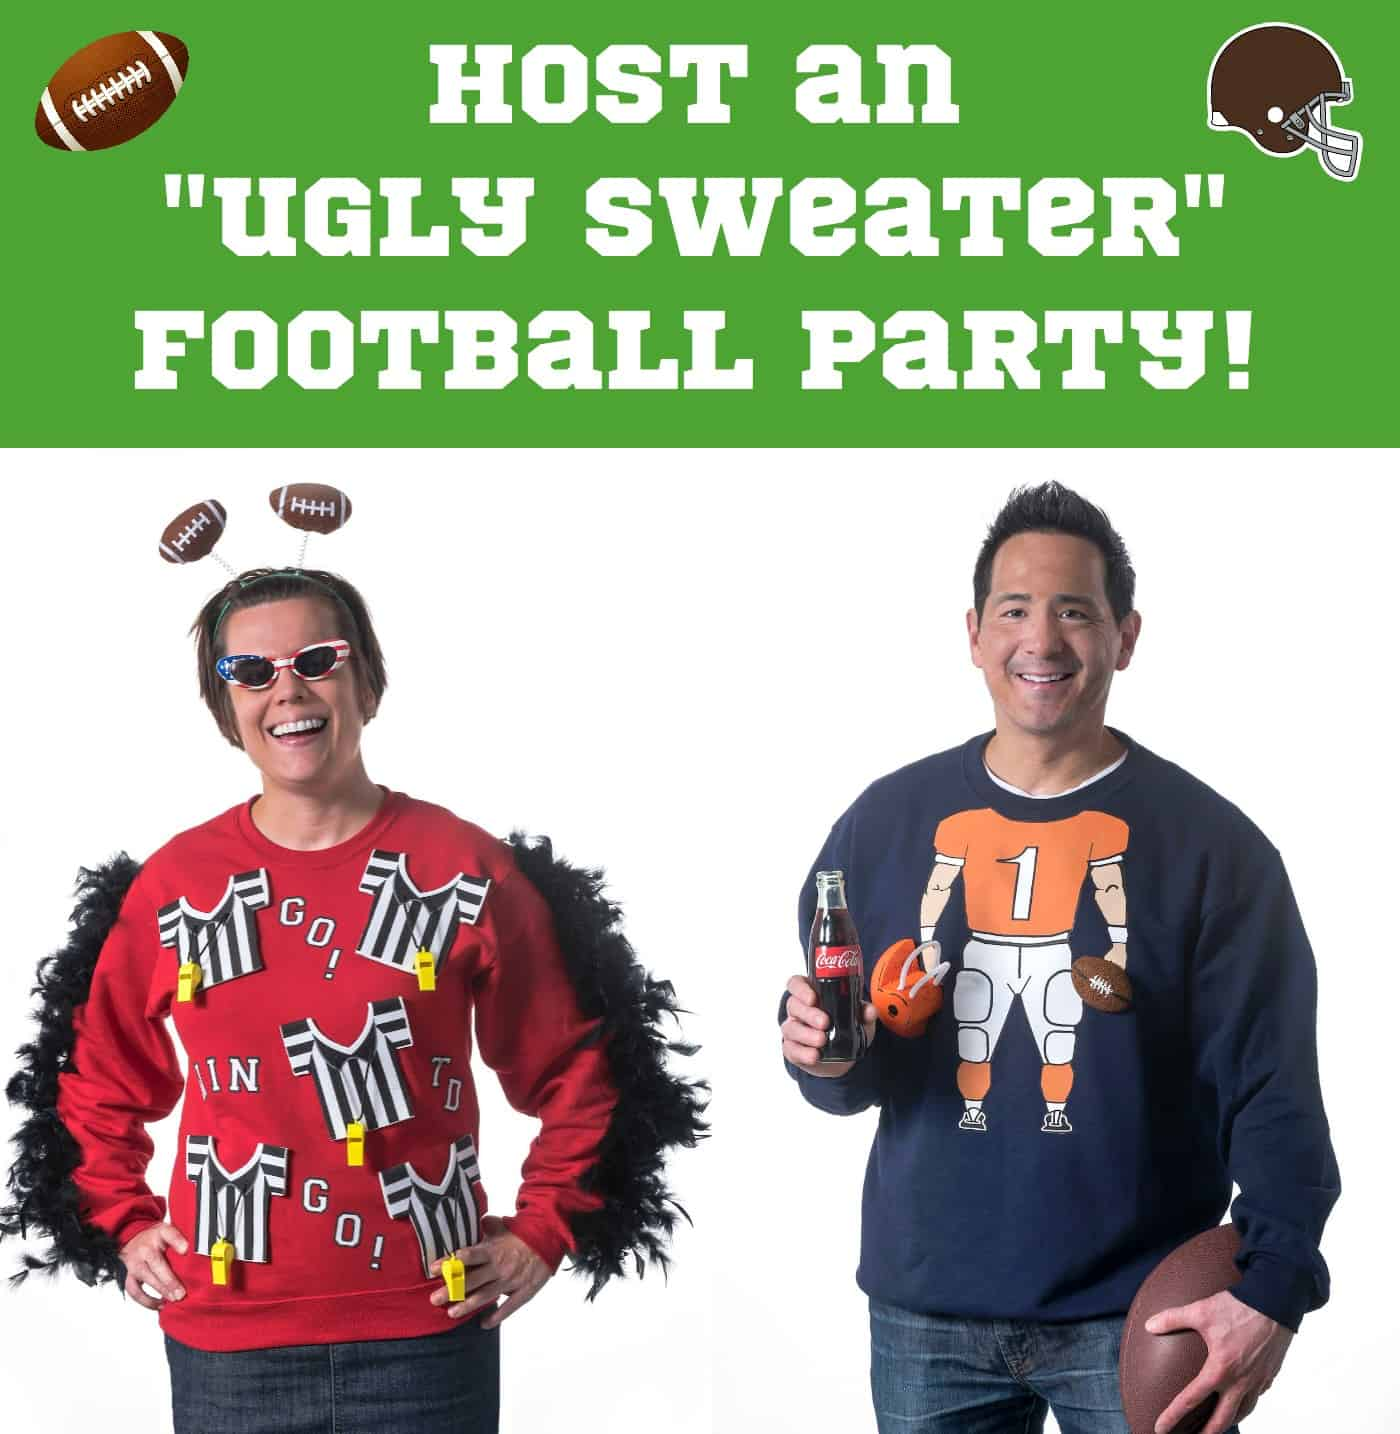 Host an ugly seater football party